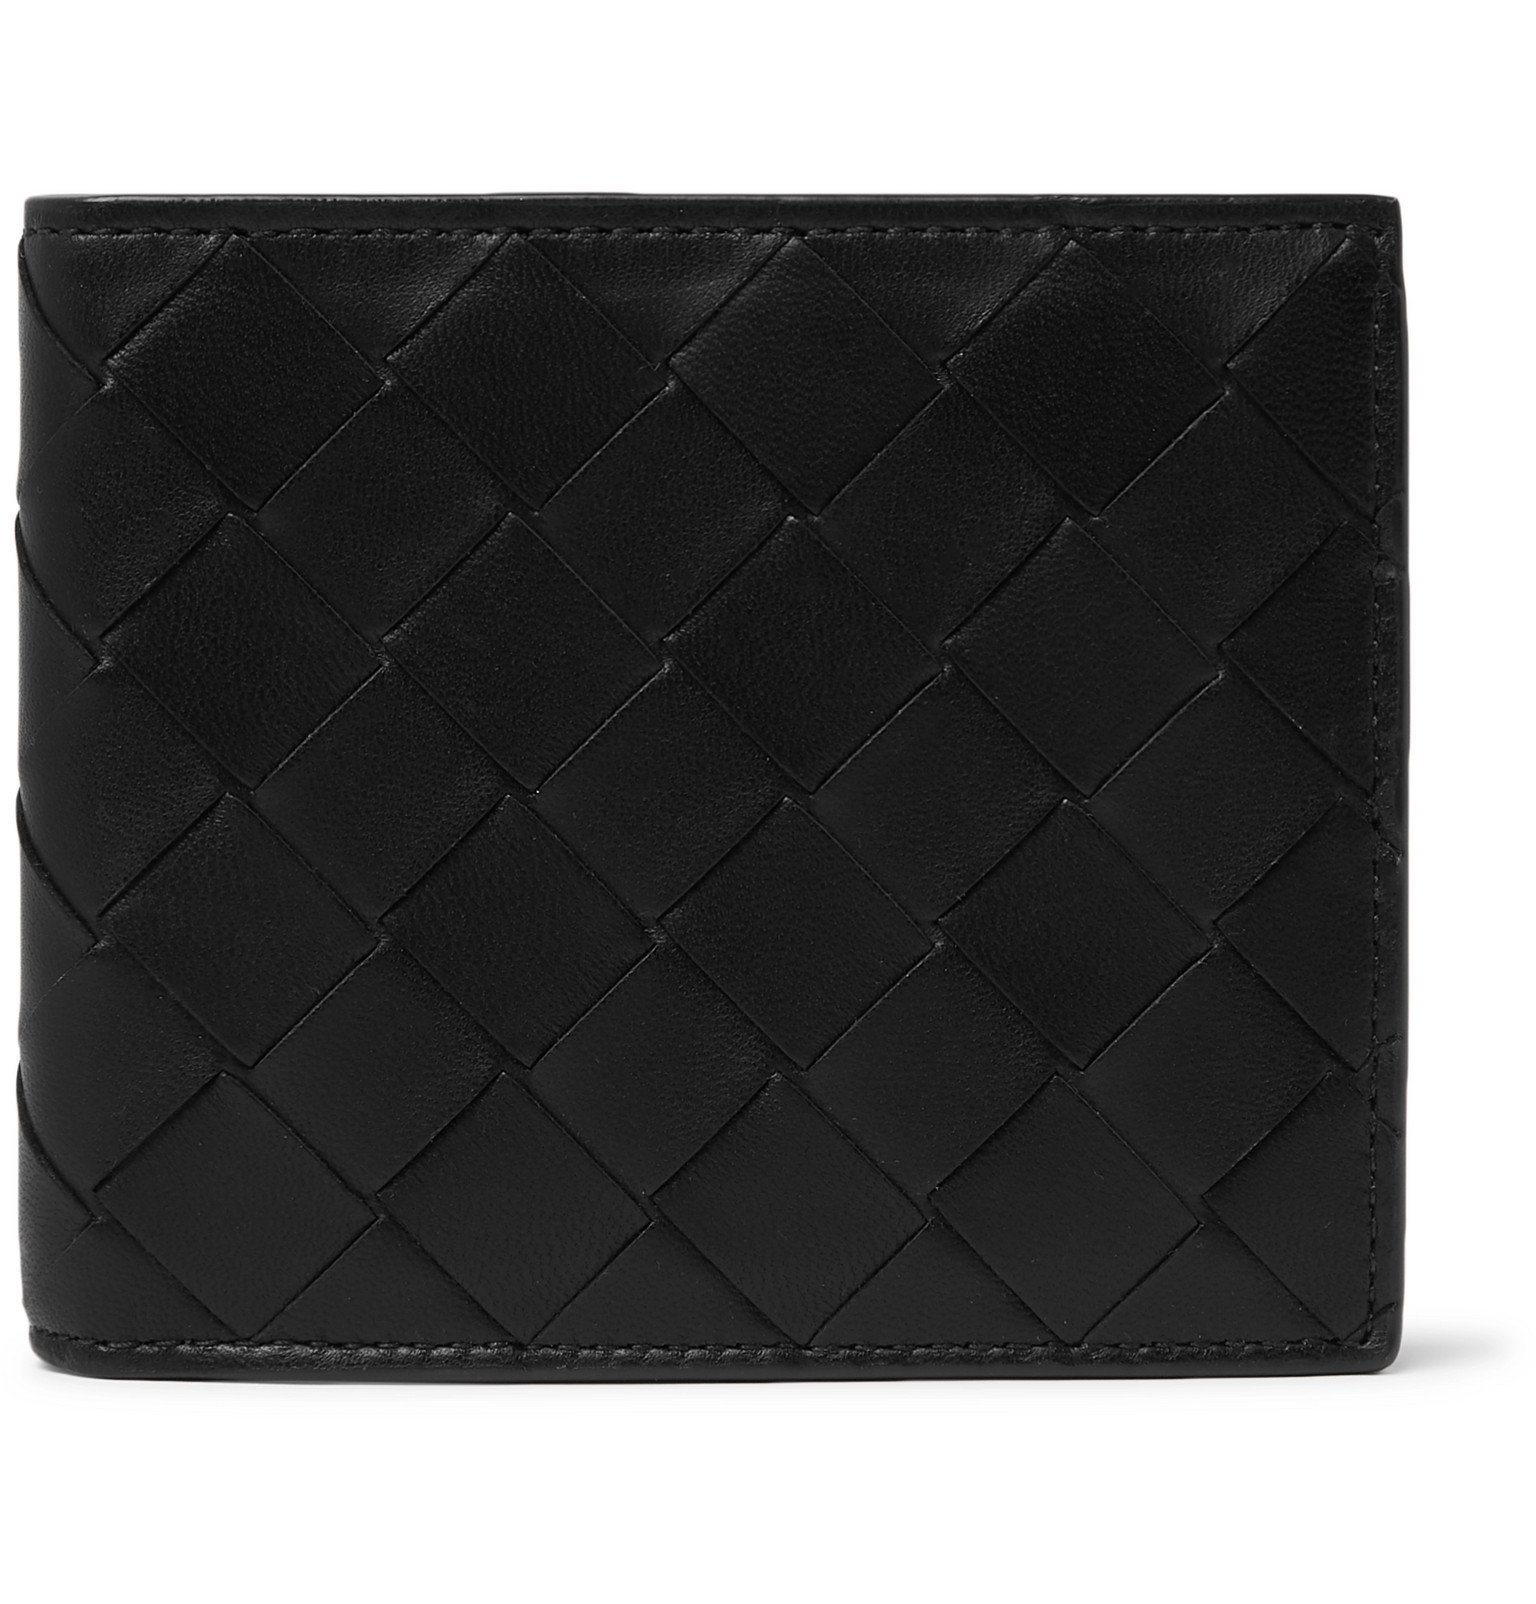 Photo: Bottega Veneta - Intrecciato Leather Billfold Wallet - Black